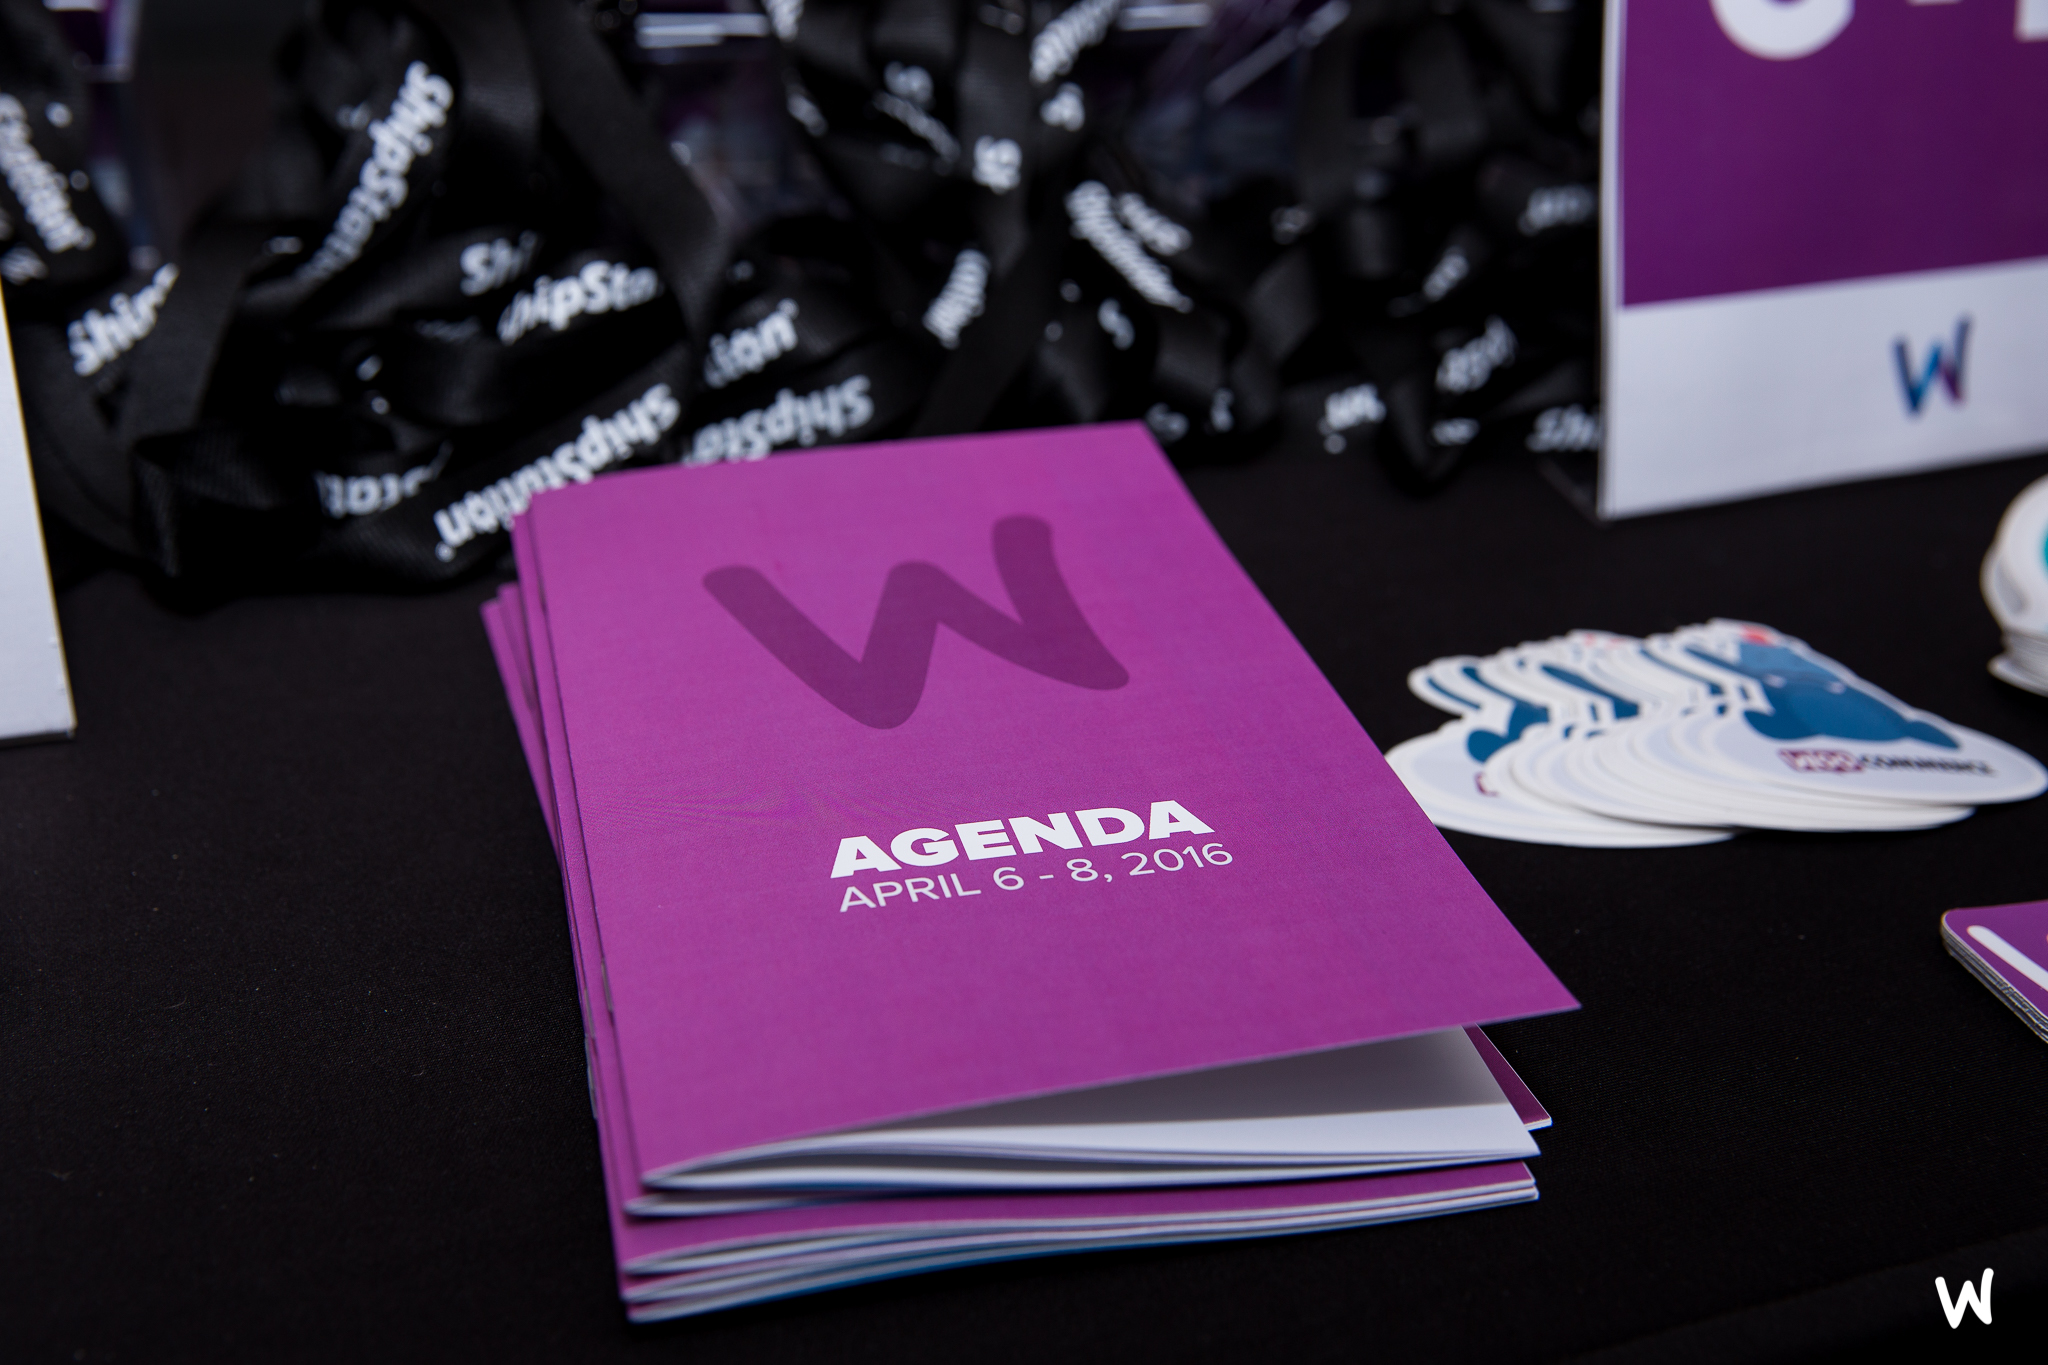 Between April 6 and 8, hundreds of WooCommerce store owners, developers, and team members descended on Austin to celebrate our second annual WooConf.